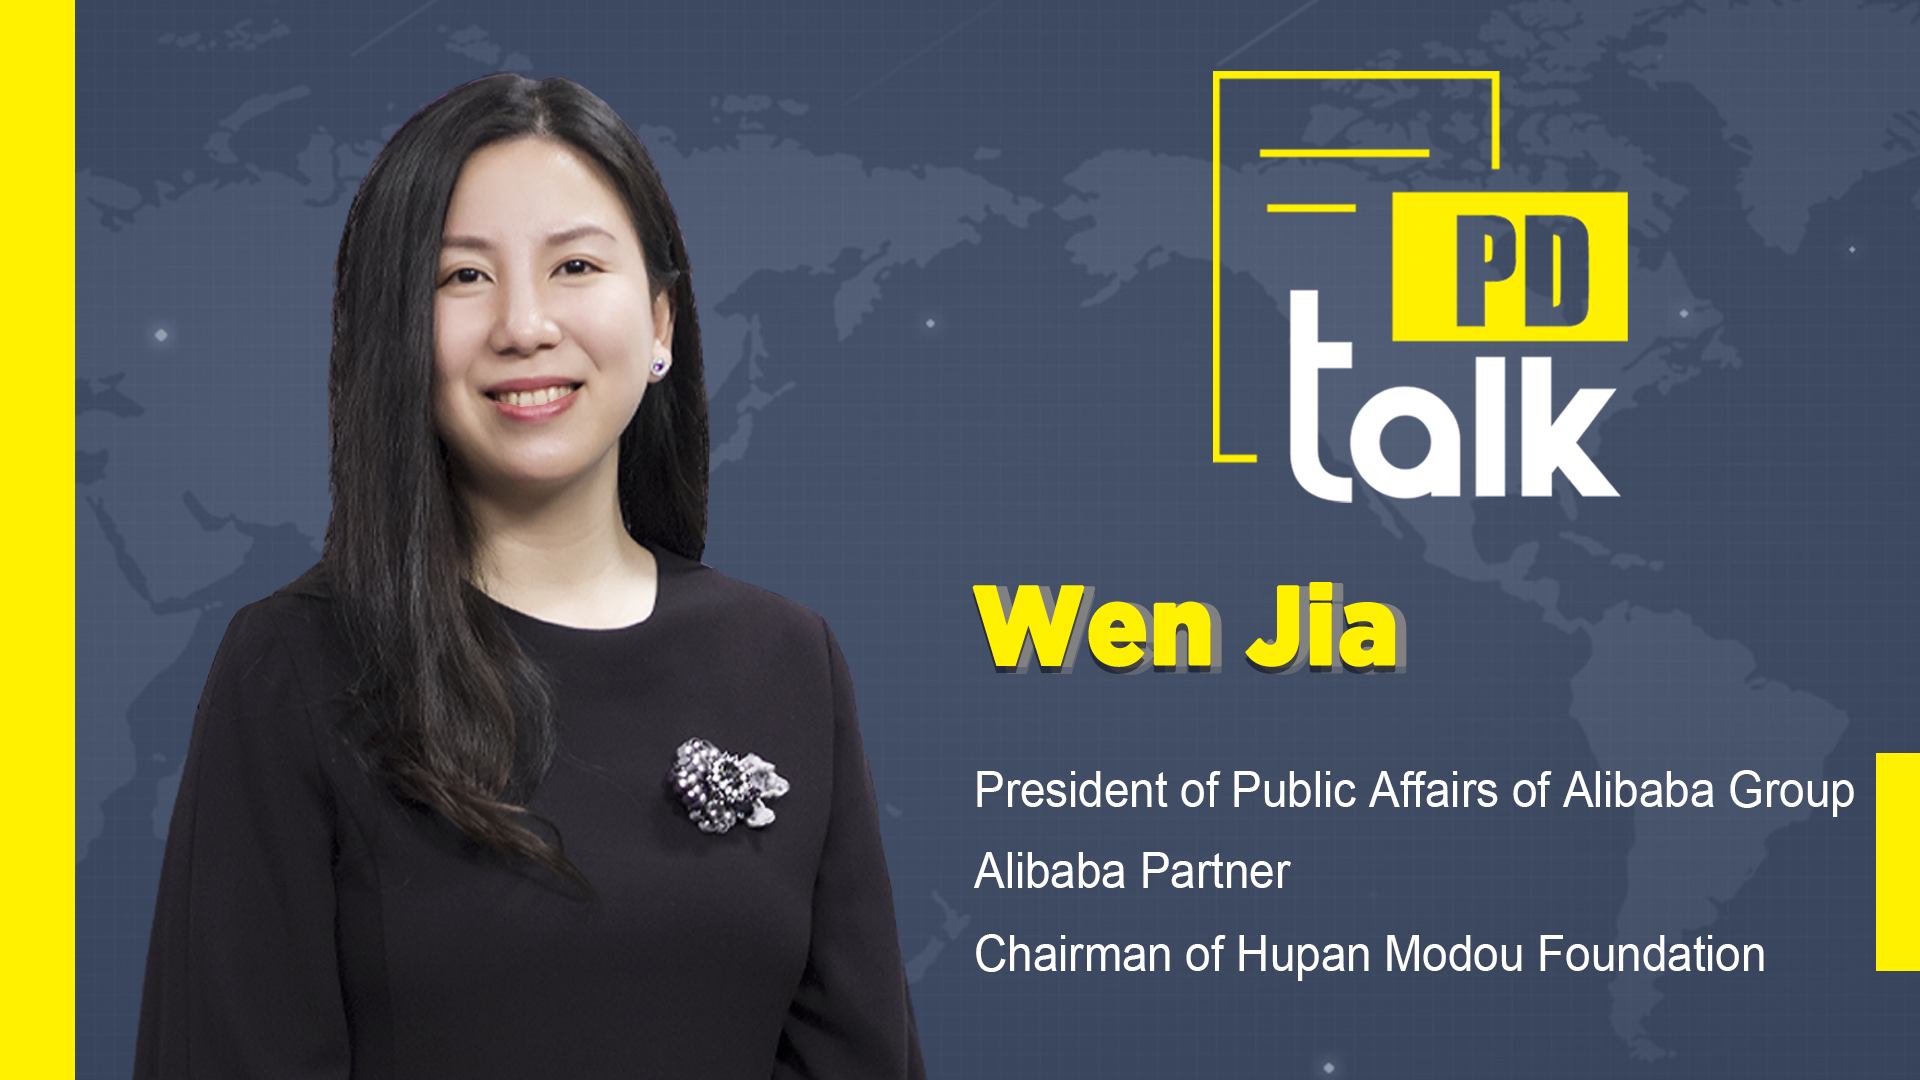 PD Talk | We made mission impossible possible: Wen Jia